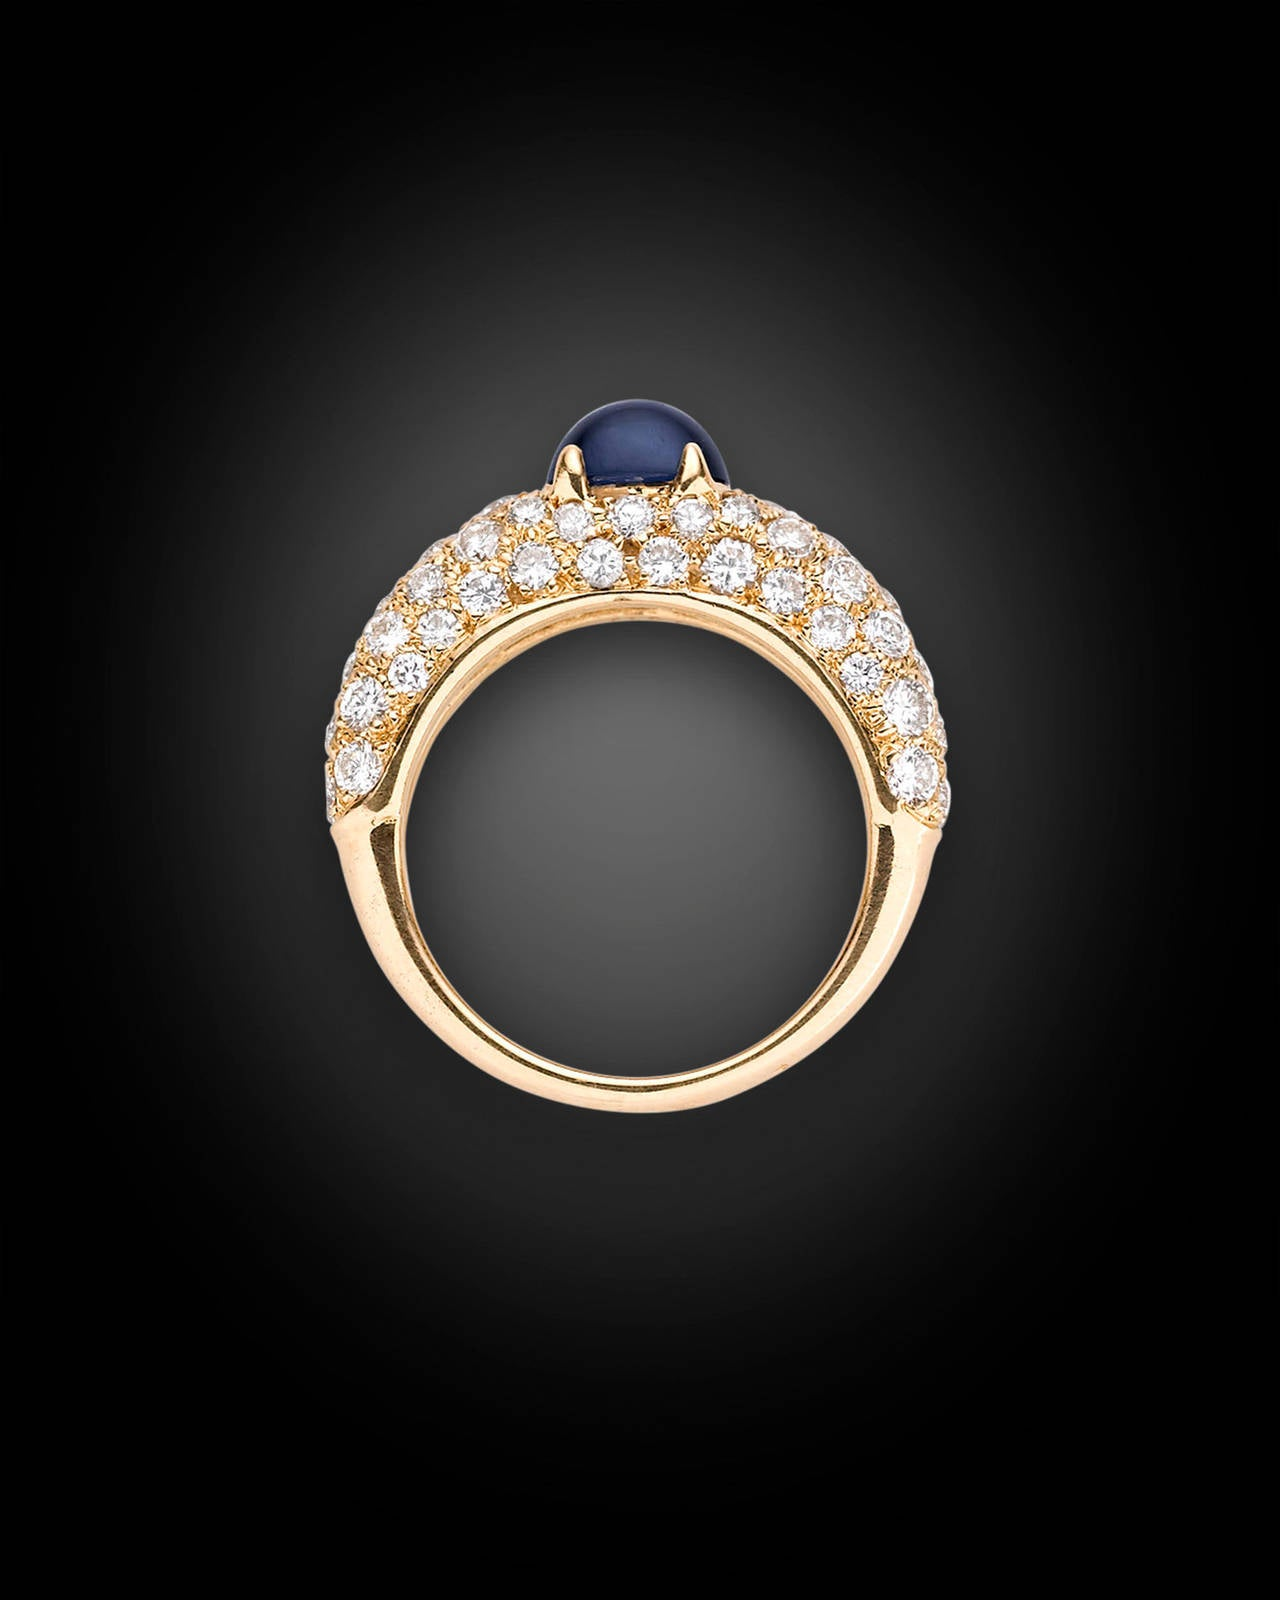 Cartier Cabochon Sapphire Ring 4